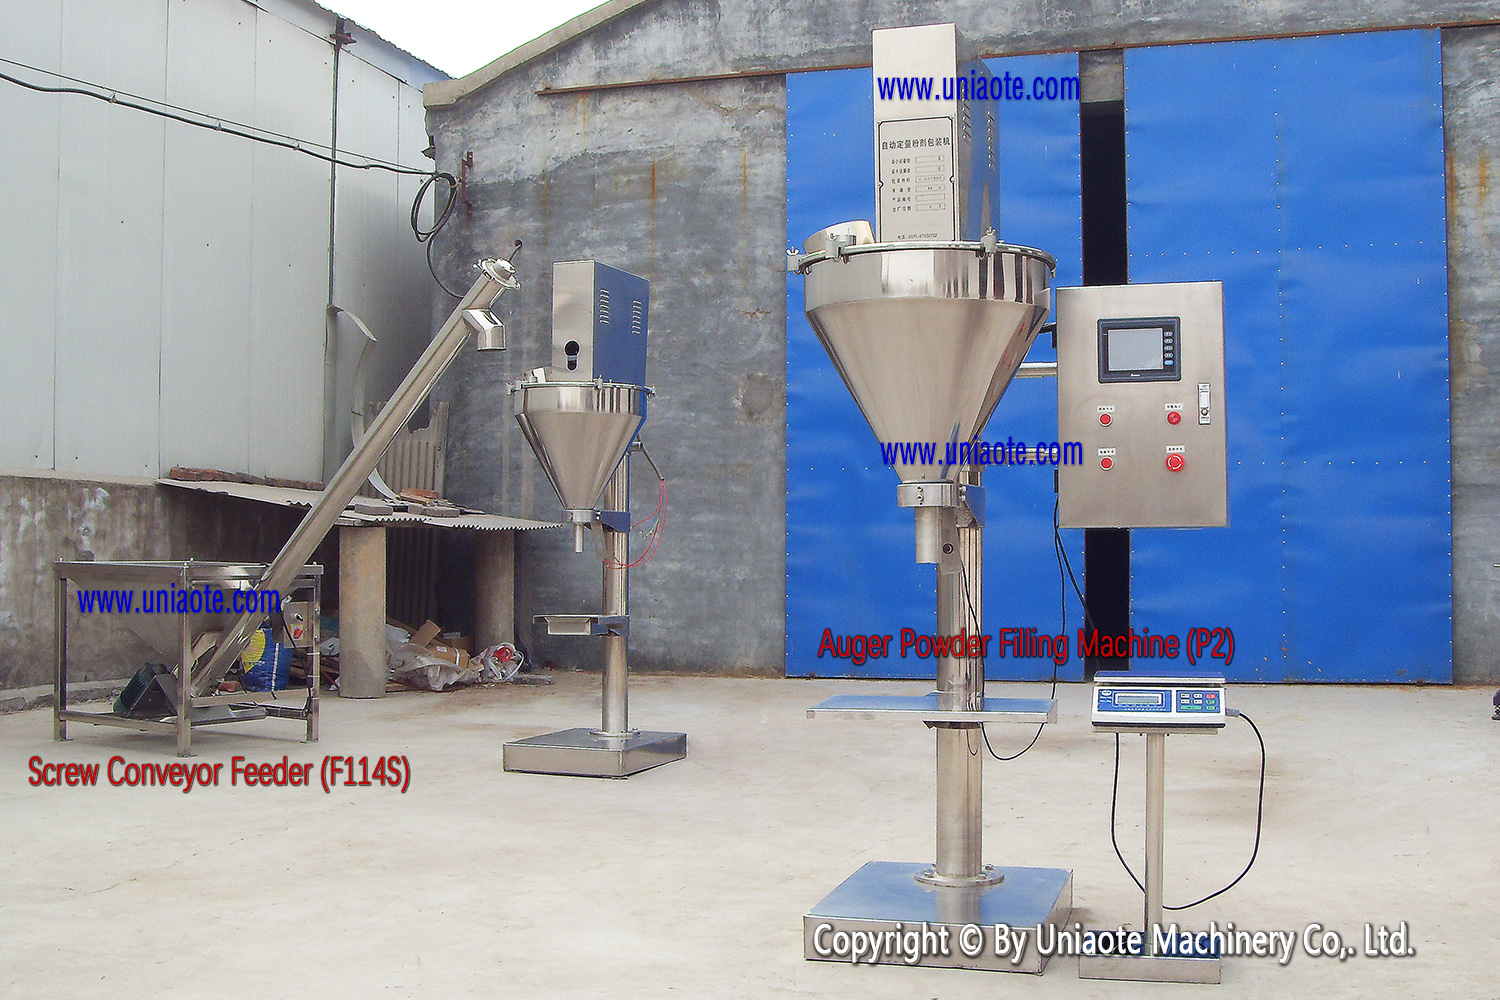 Semi Automatic Powder Filler Machine With Touch Screen